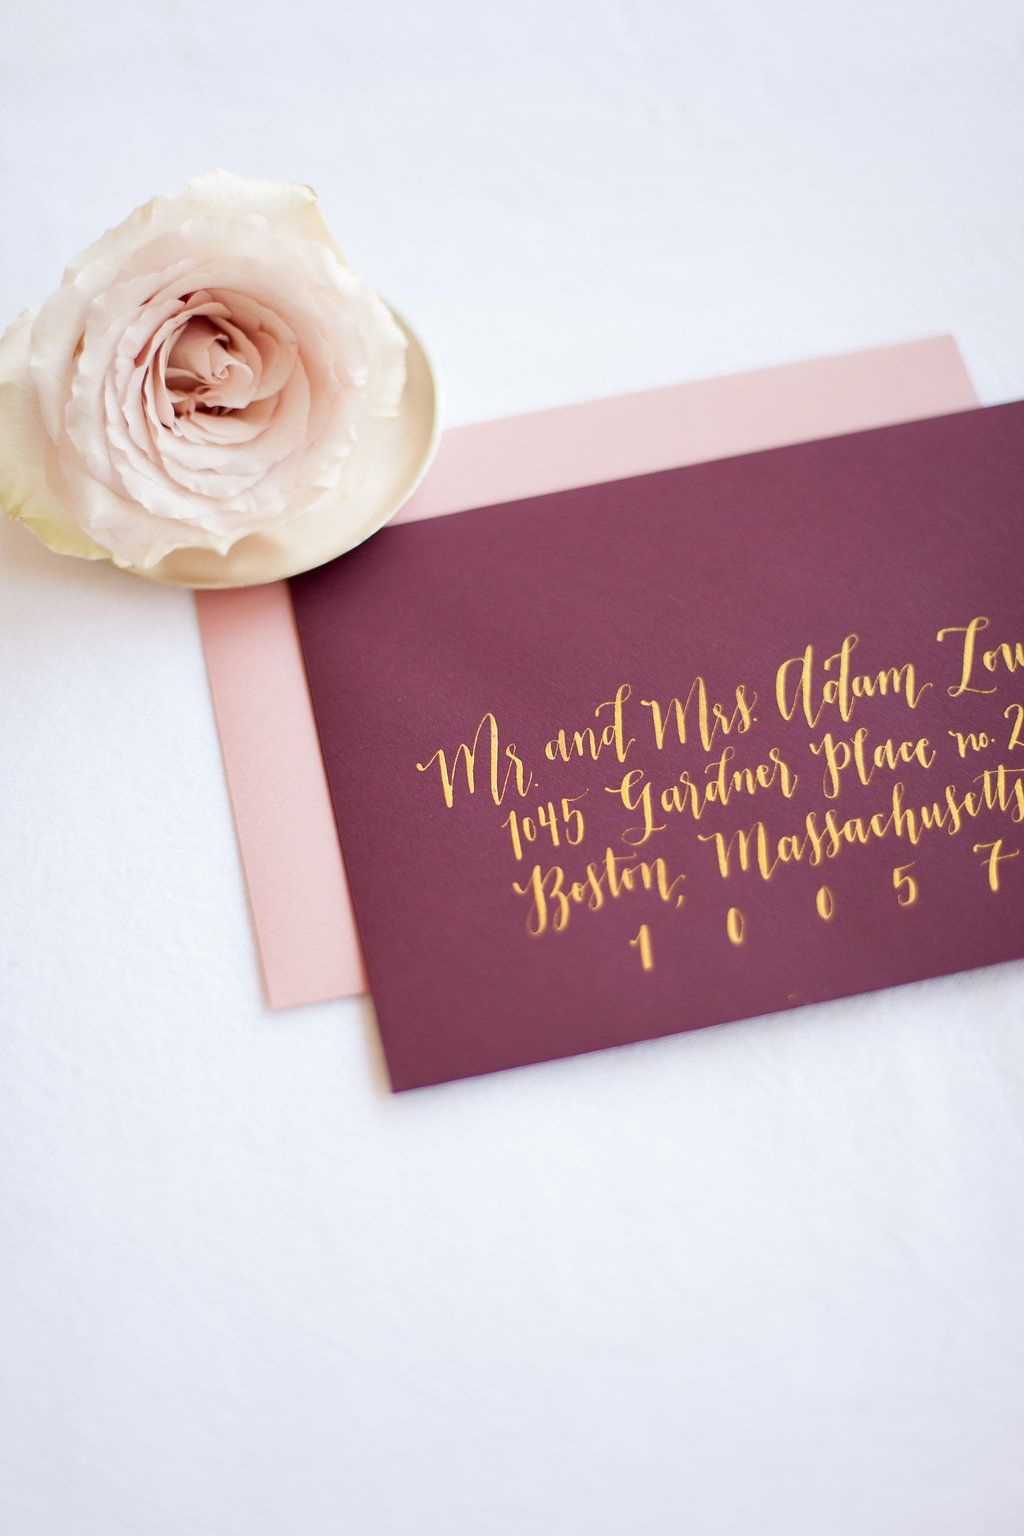 Gold Finetec Calligraphy On Marsala Envelope By Prairie Letter Shop